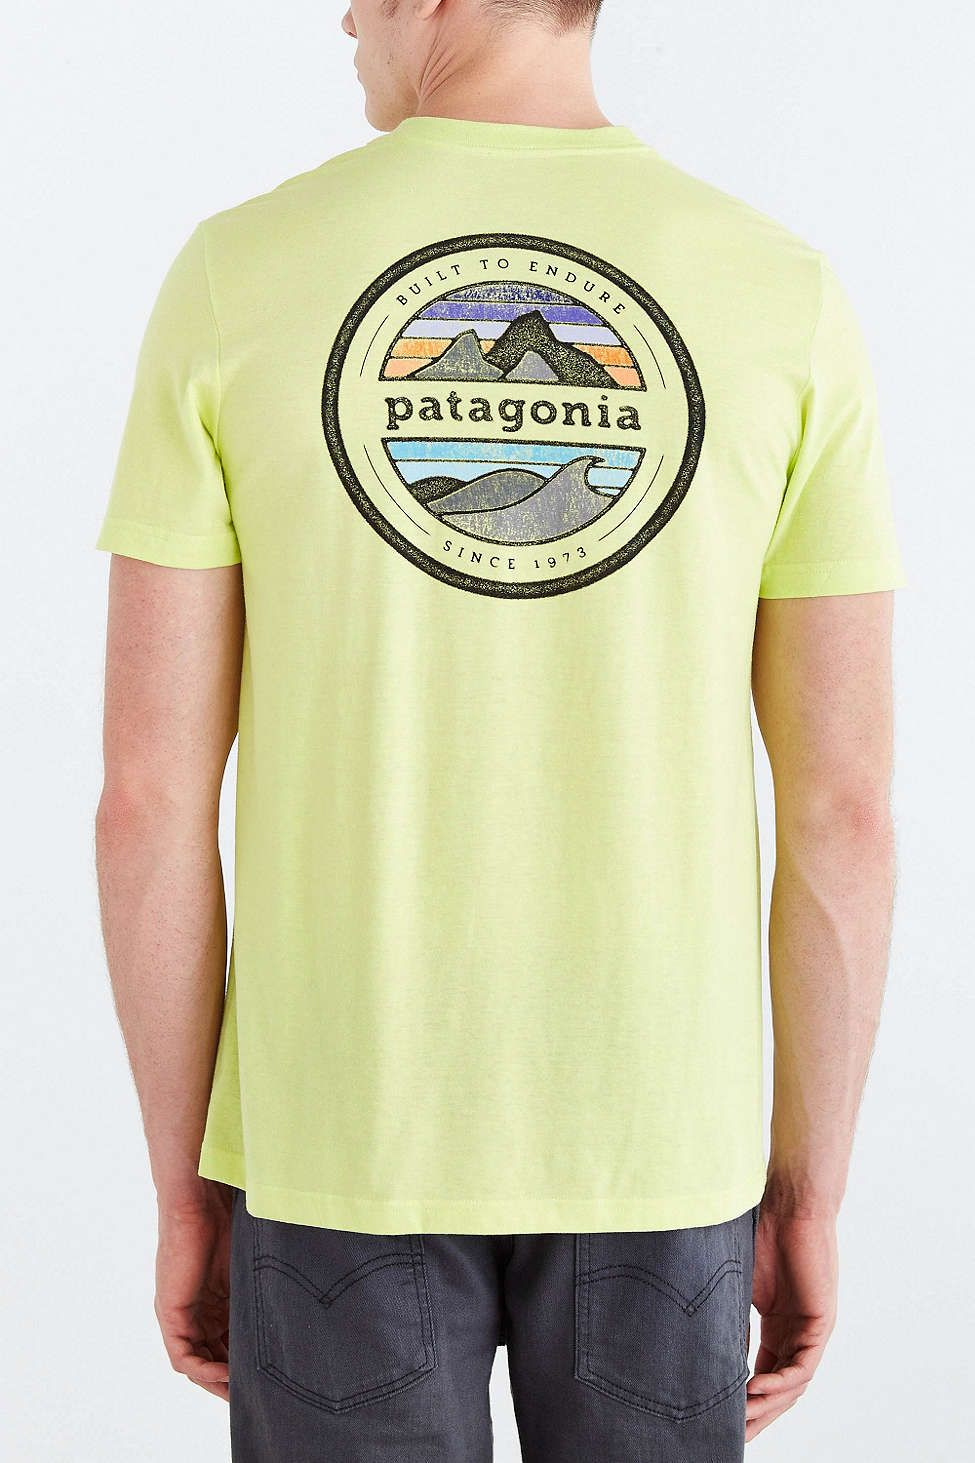 Shop Patagonia Rivet Logo Tee at Urban Outfitters today. We carry all the  latest styles, colors and brands for you to choose from right here.